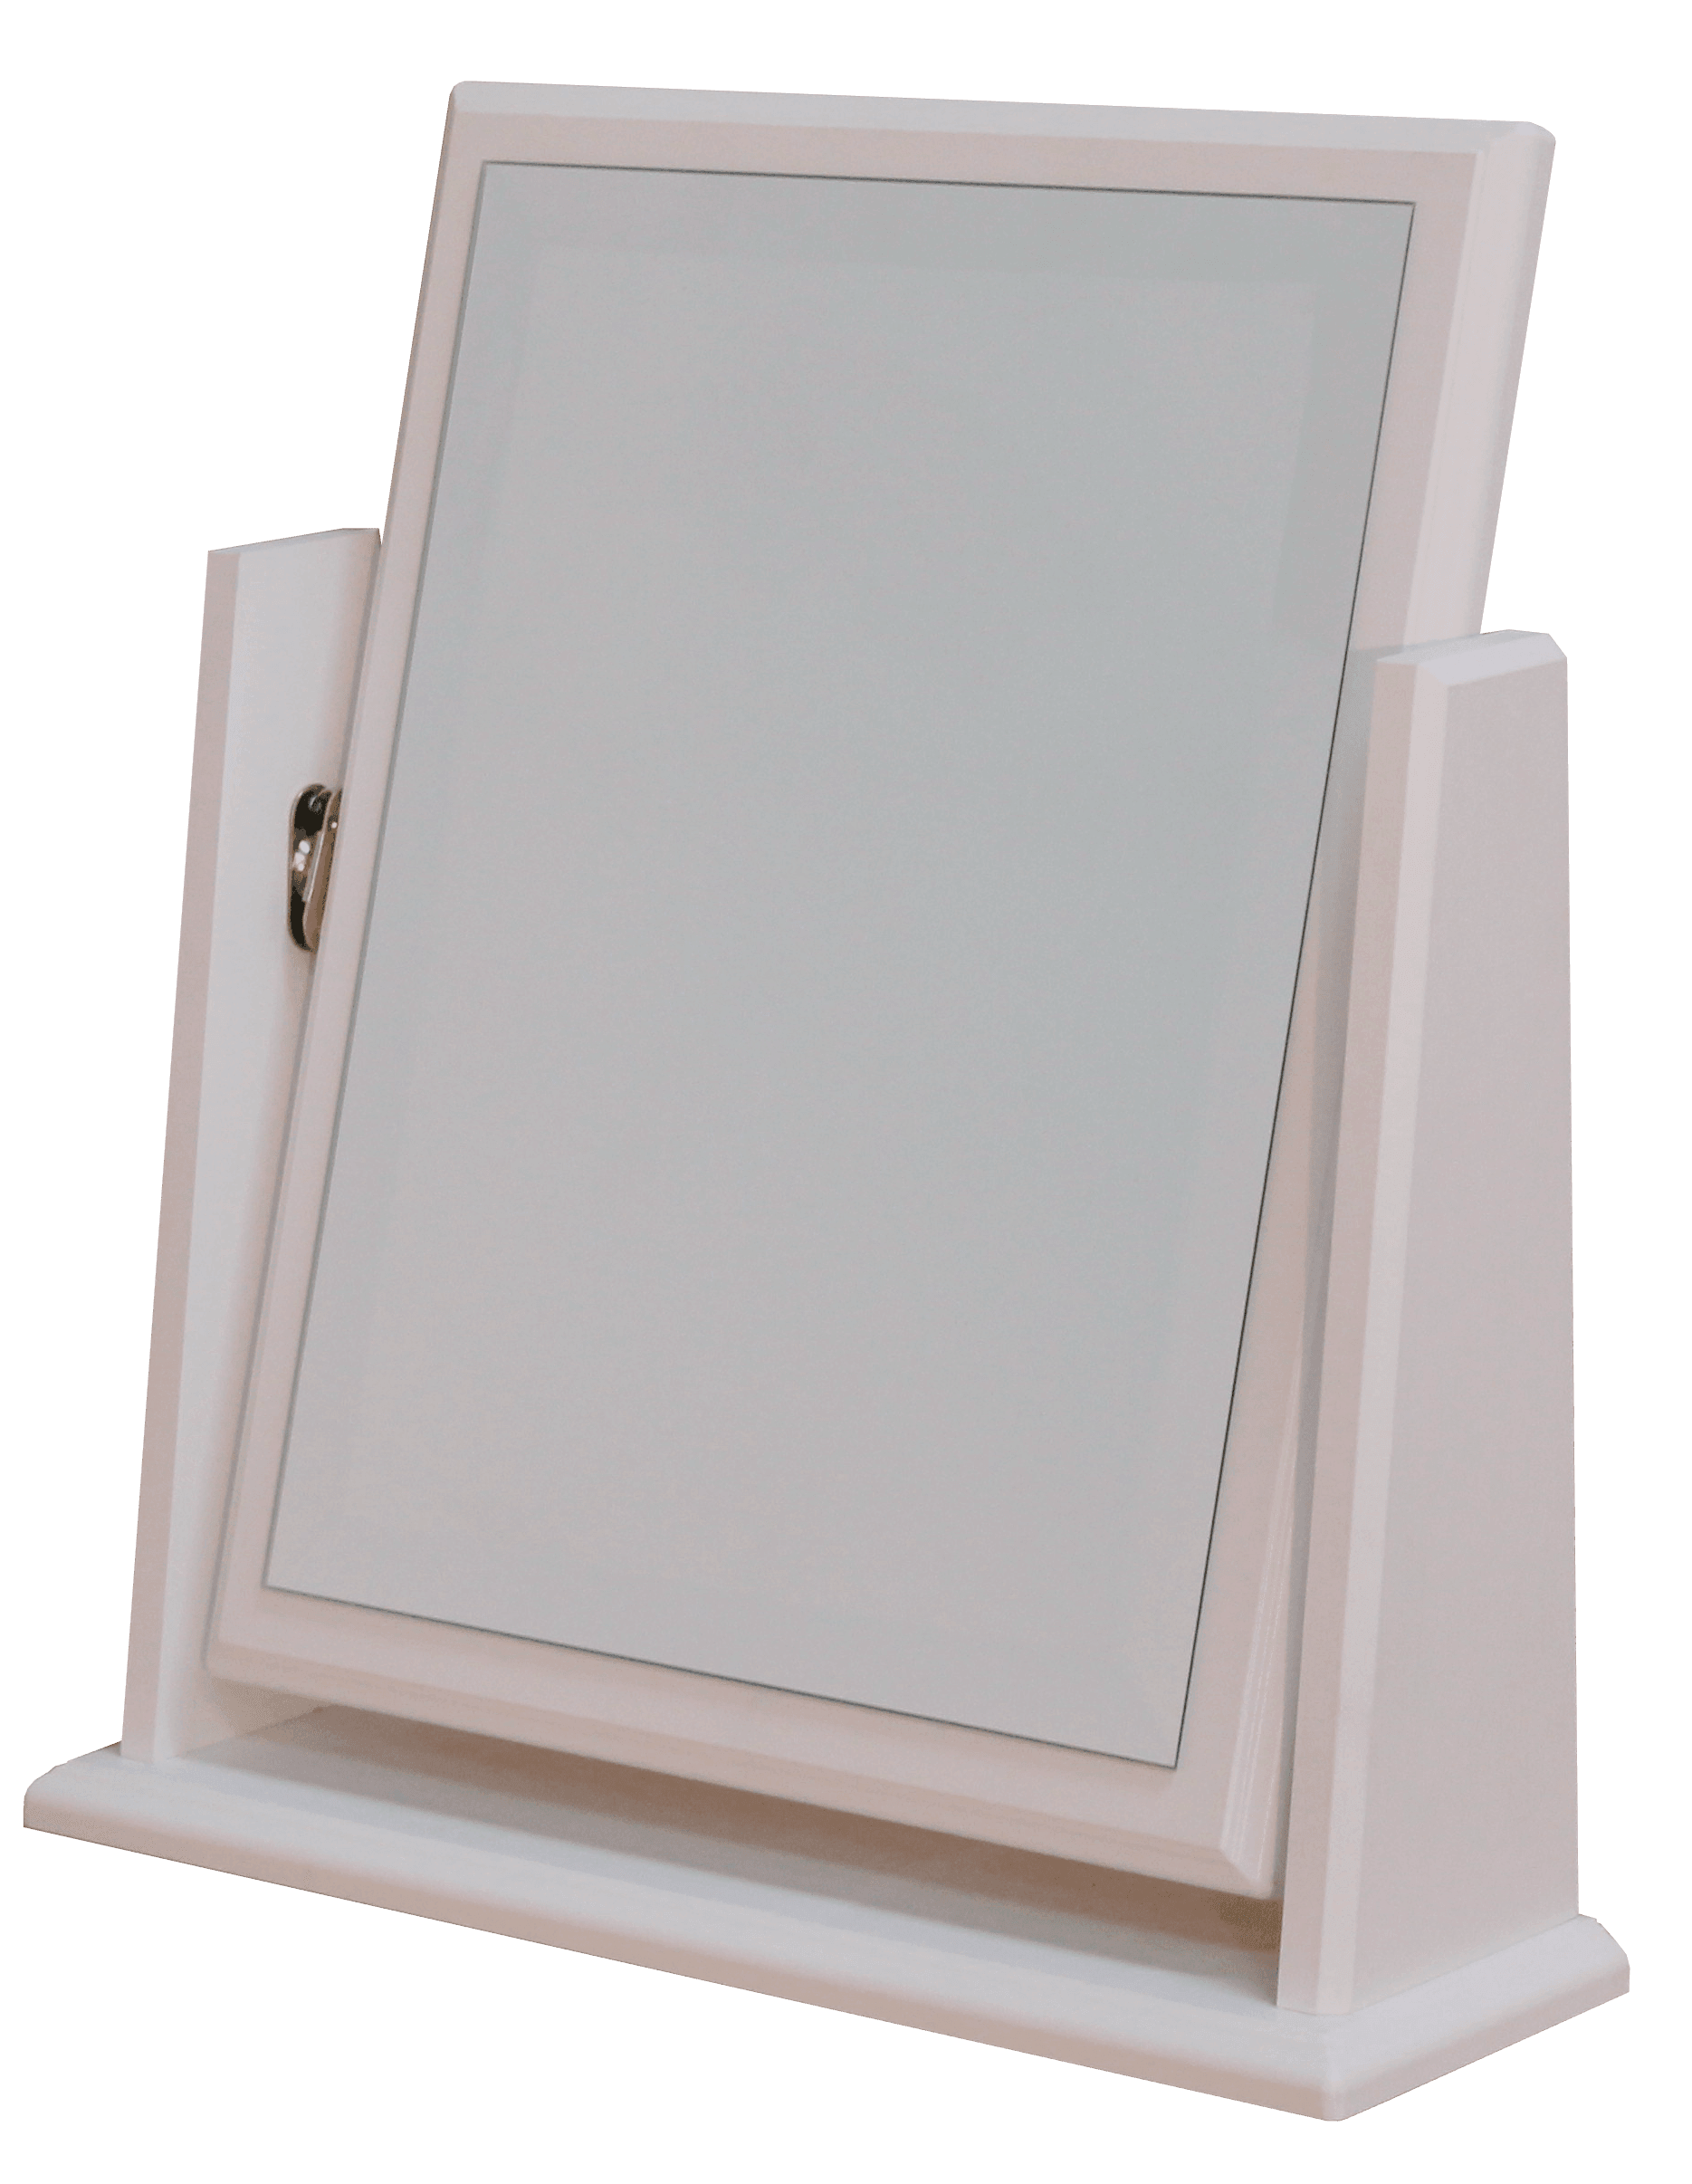 Avoca White Swivel Mirror